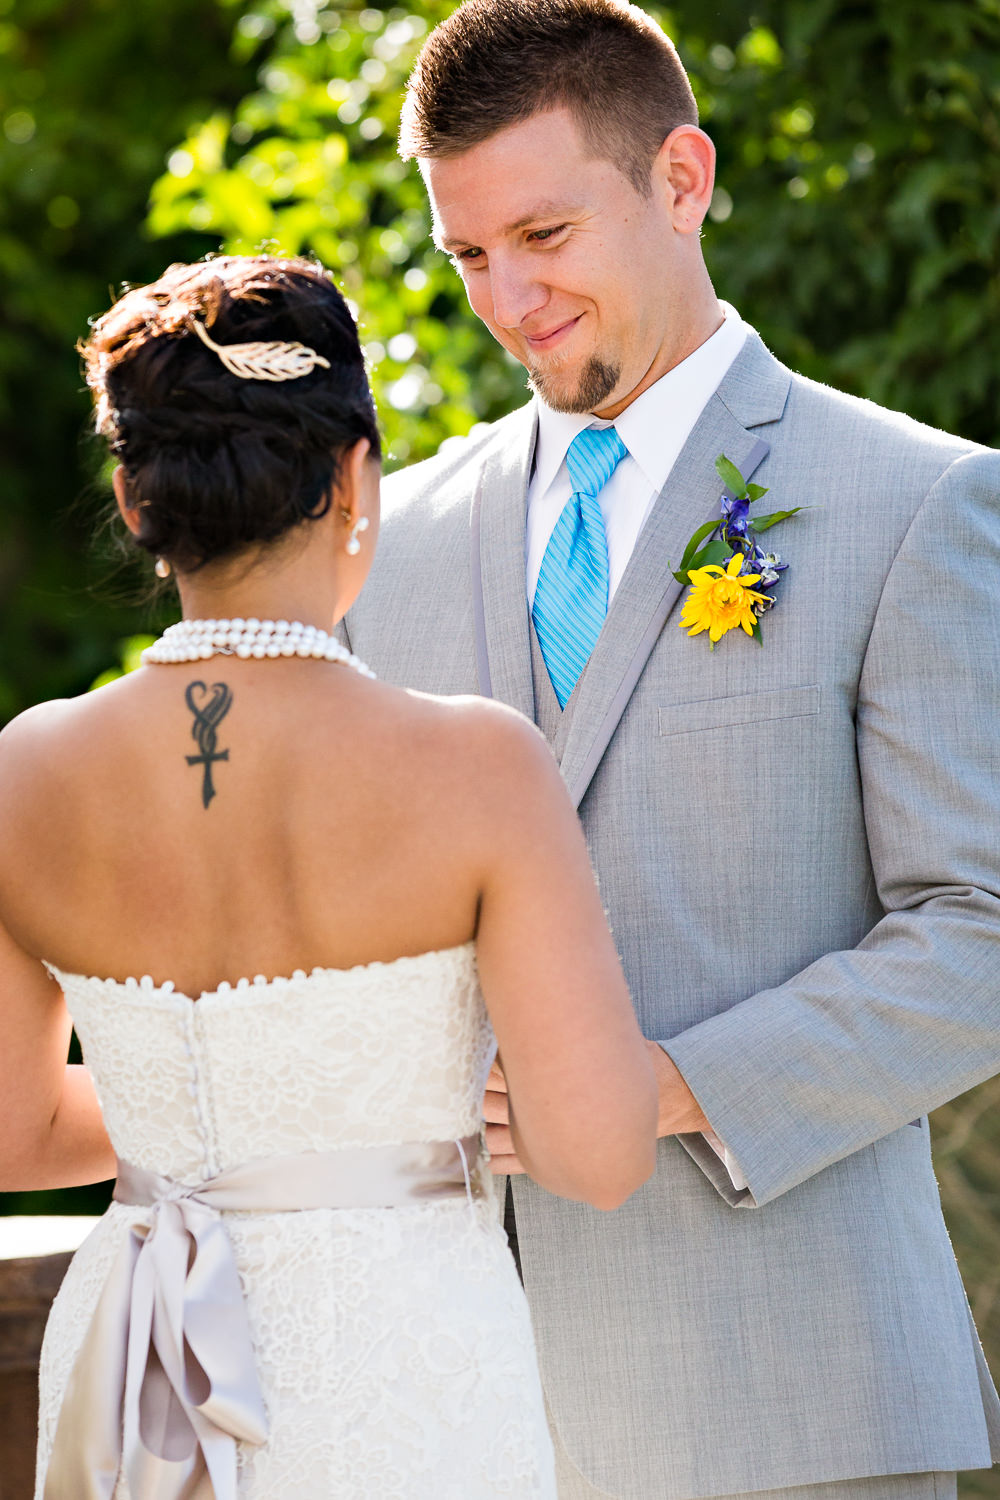 billings-montana-chanceys-wedding-ceremony-groom-smiles-at-bride.jpg